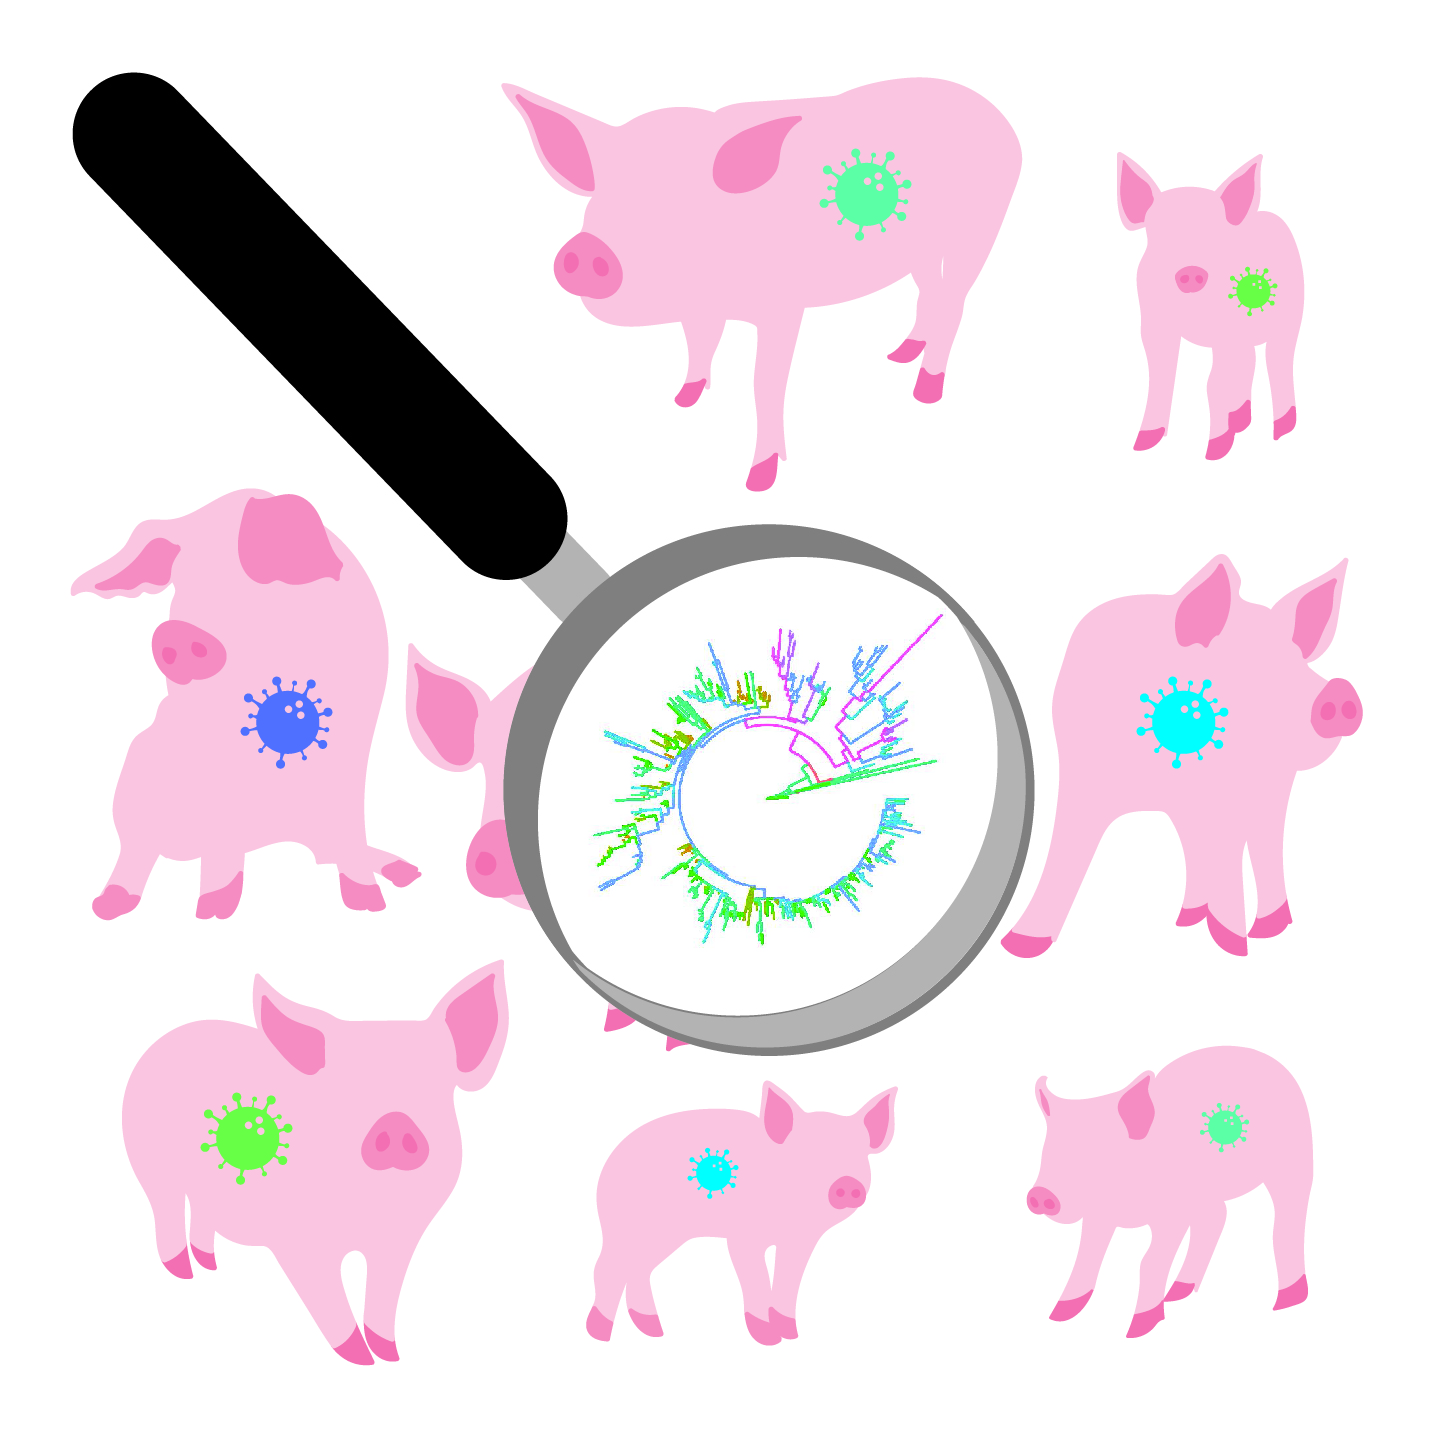 An illustration depicting a herd of pigs with the PRRS virus. A magnifying glass is over one of the pigs, revealing a genetic tree.